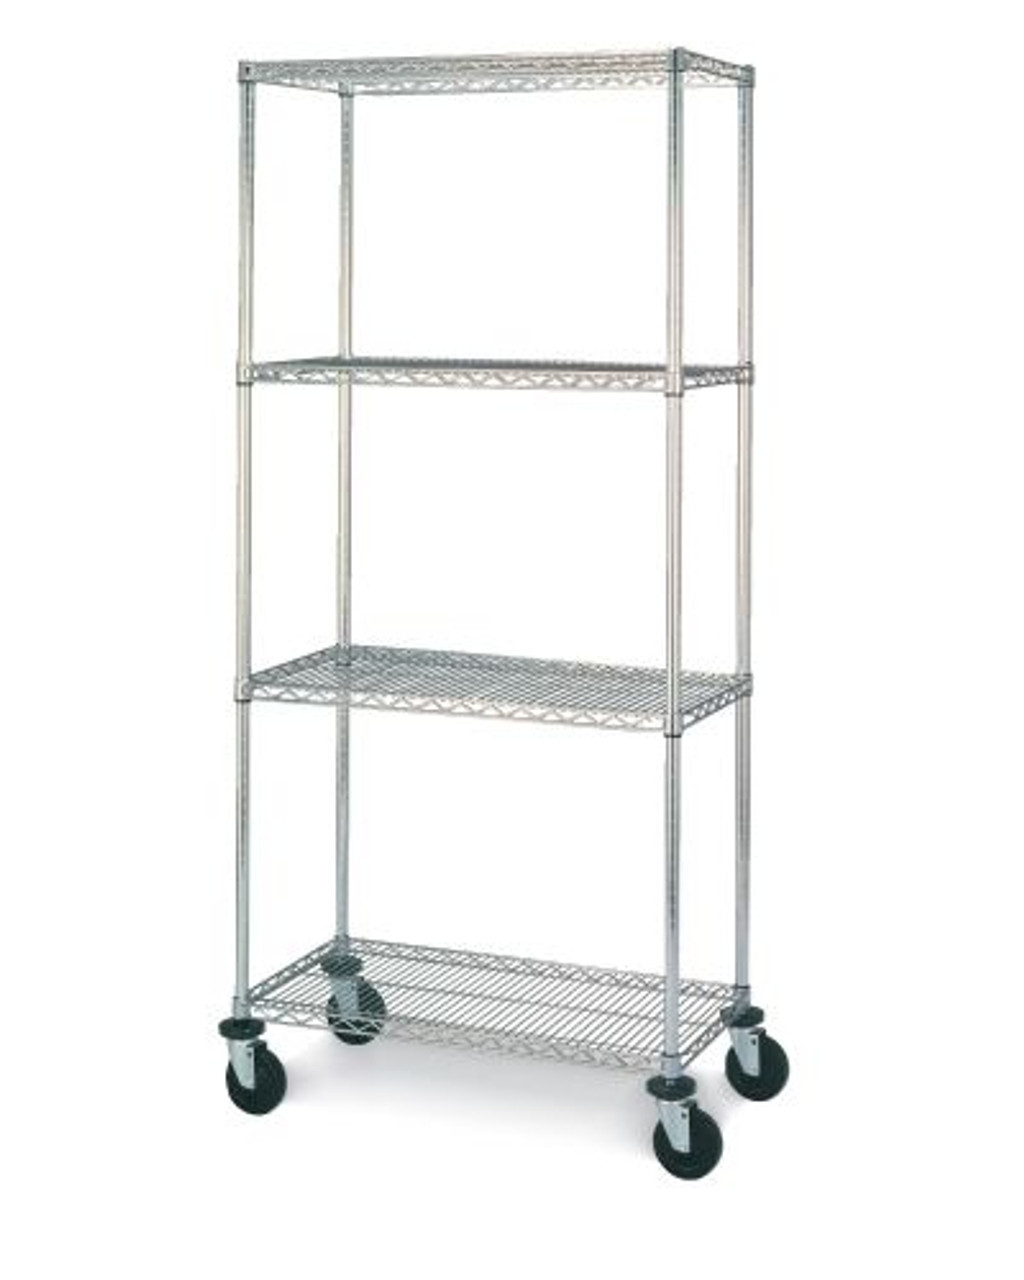 "Olympic 24"" Deep 4 Shelf Mobile Carts - Chrome - 24"" x 72"" x 59"" MJ2472-54UC"